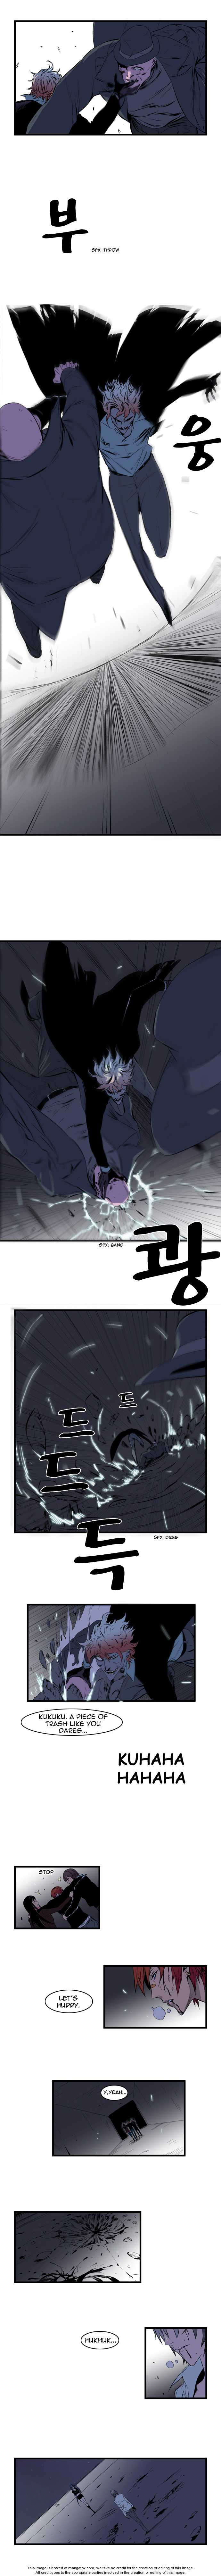 Noblesse 72 Page 3